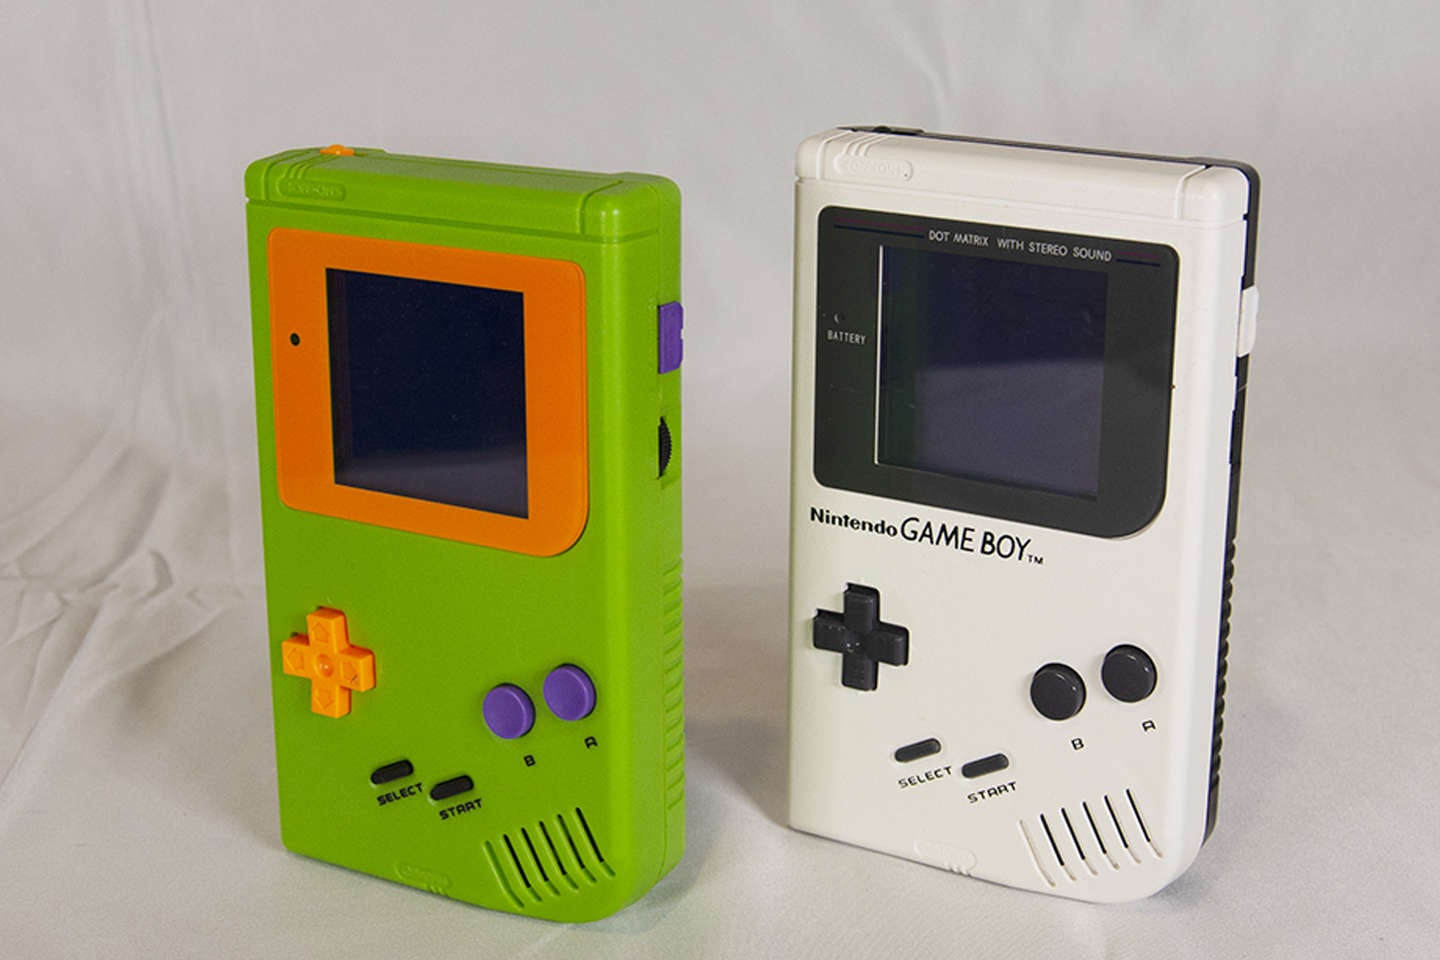 Cartoon Network and Nickelodeon Game Boy